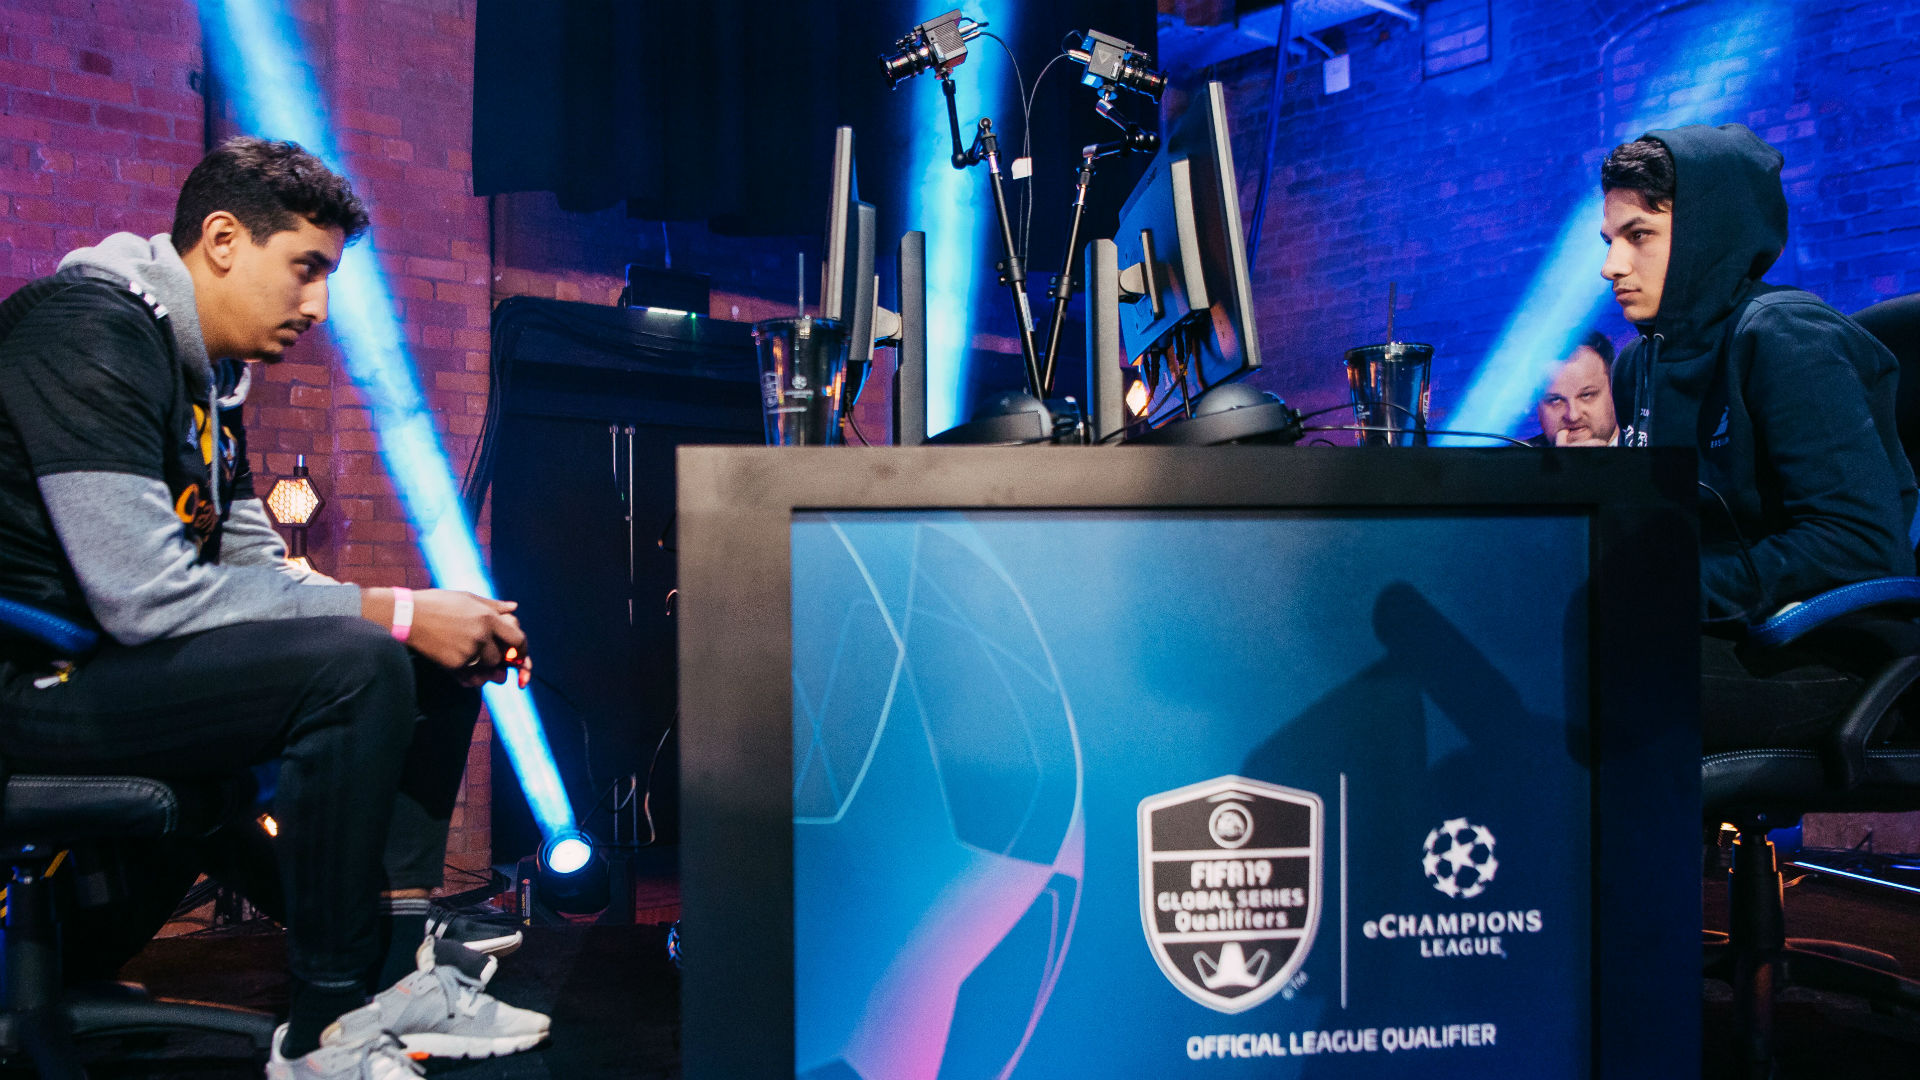 eChampions League live stream: How to watch new FIFA tournament's final rounds